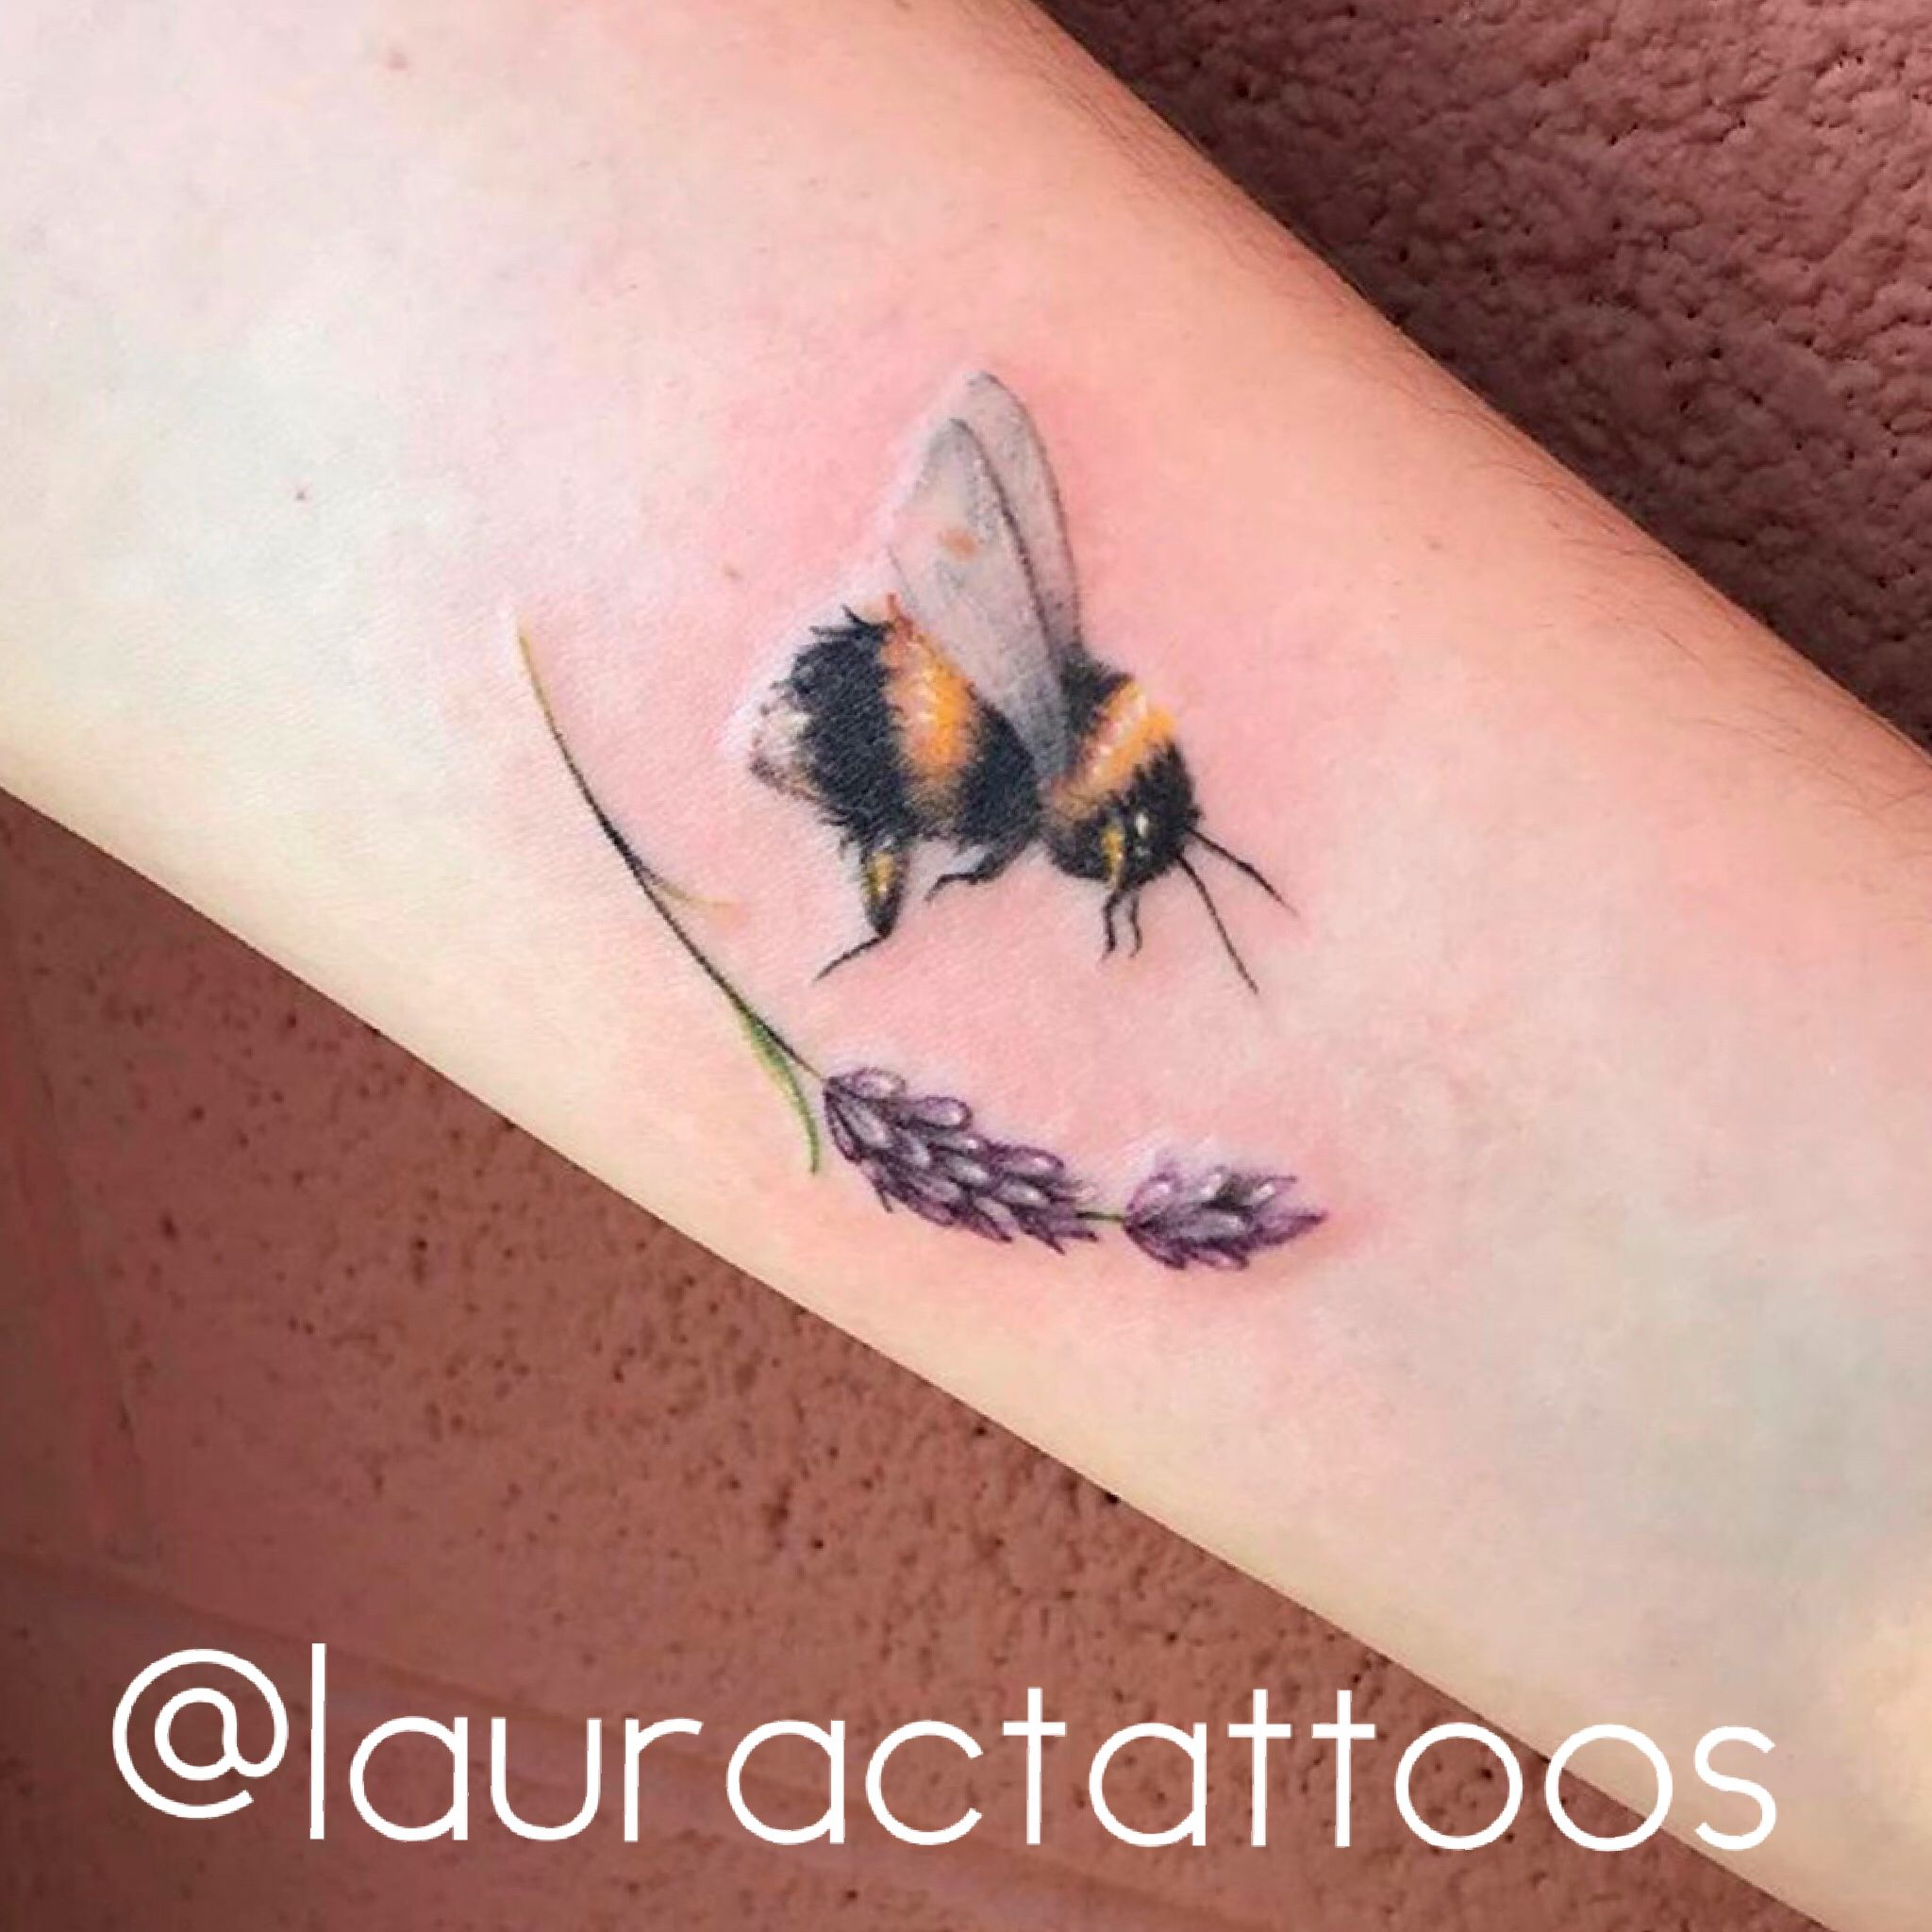 2b177f14f003c Lavender and a bumble bee tattoo, what a happy combination! Such detailed  dainty work by @lauractattoos